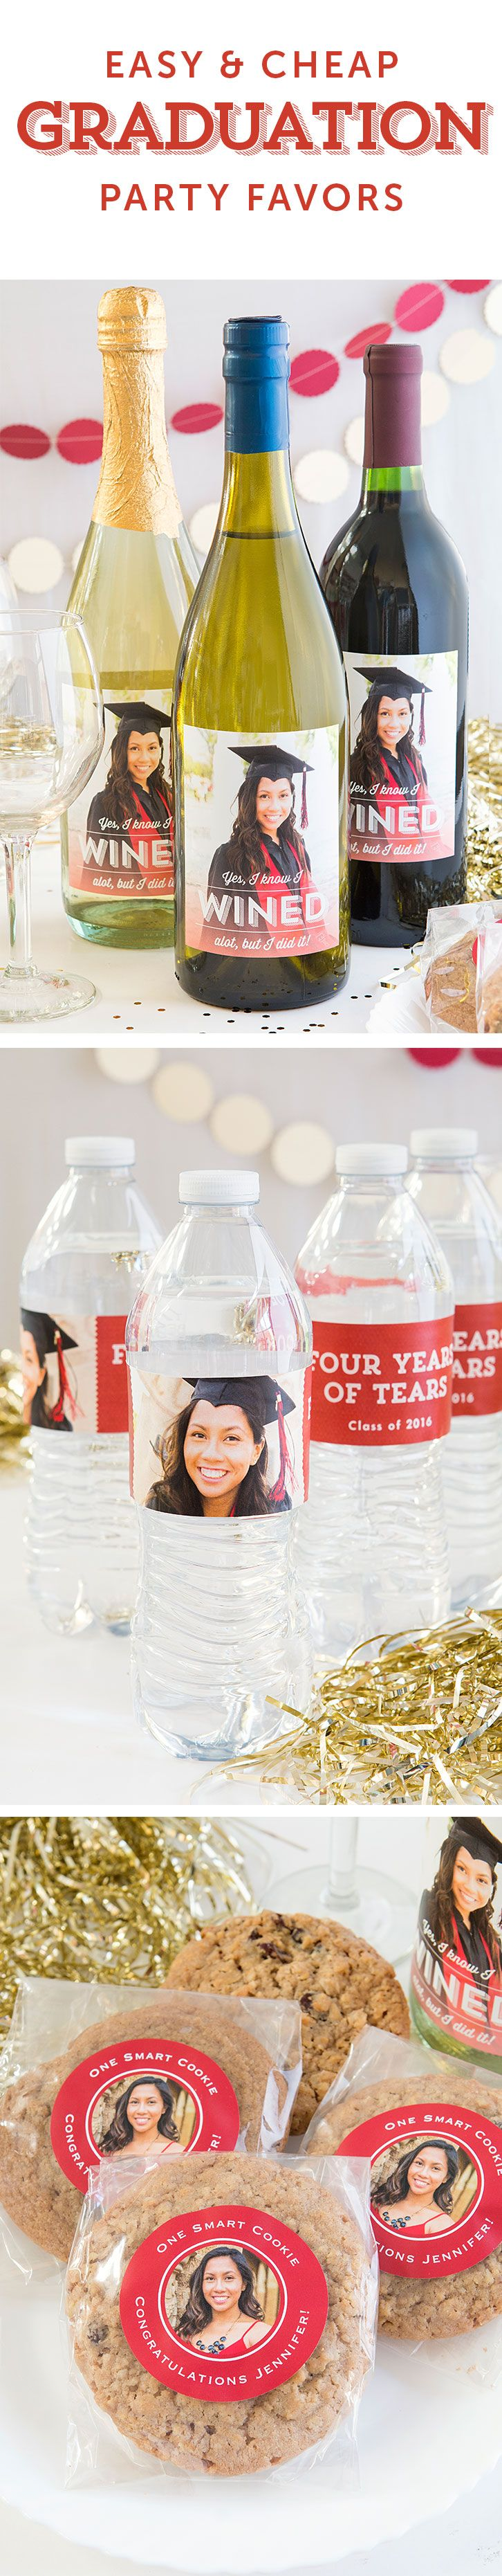 graduation, graduation party favors, graduation parties, party favors, evermine, evermine.com